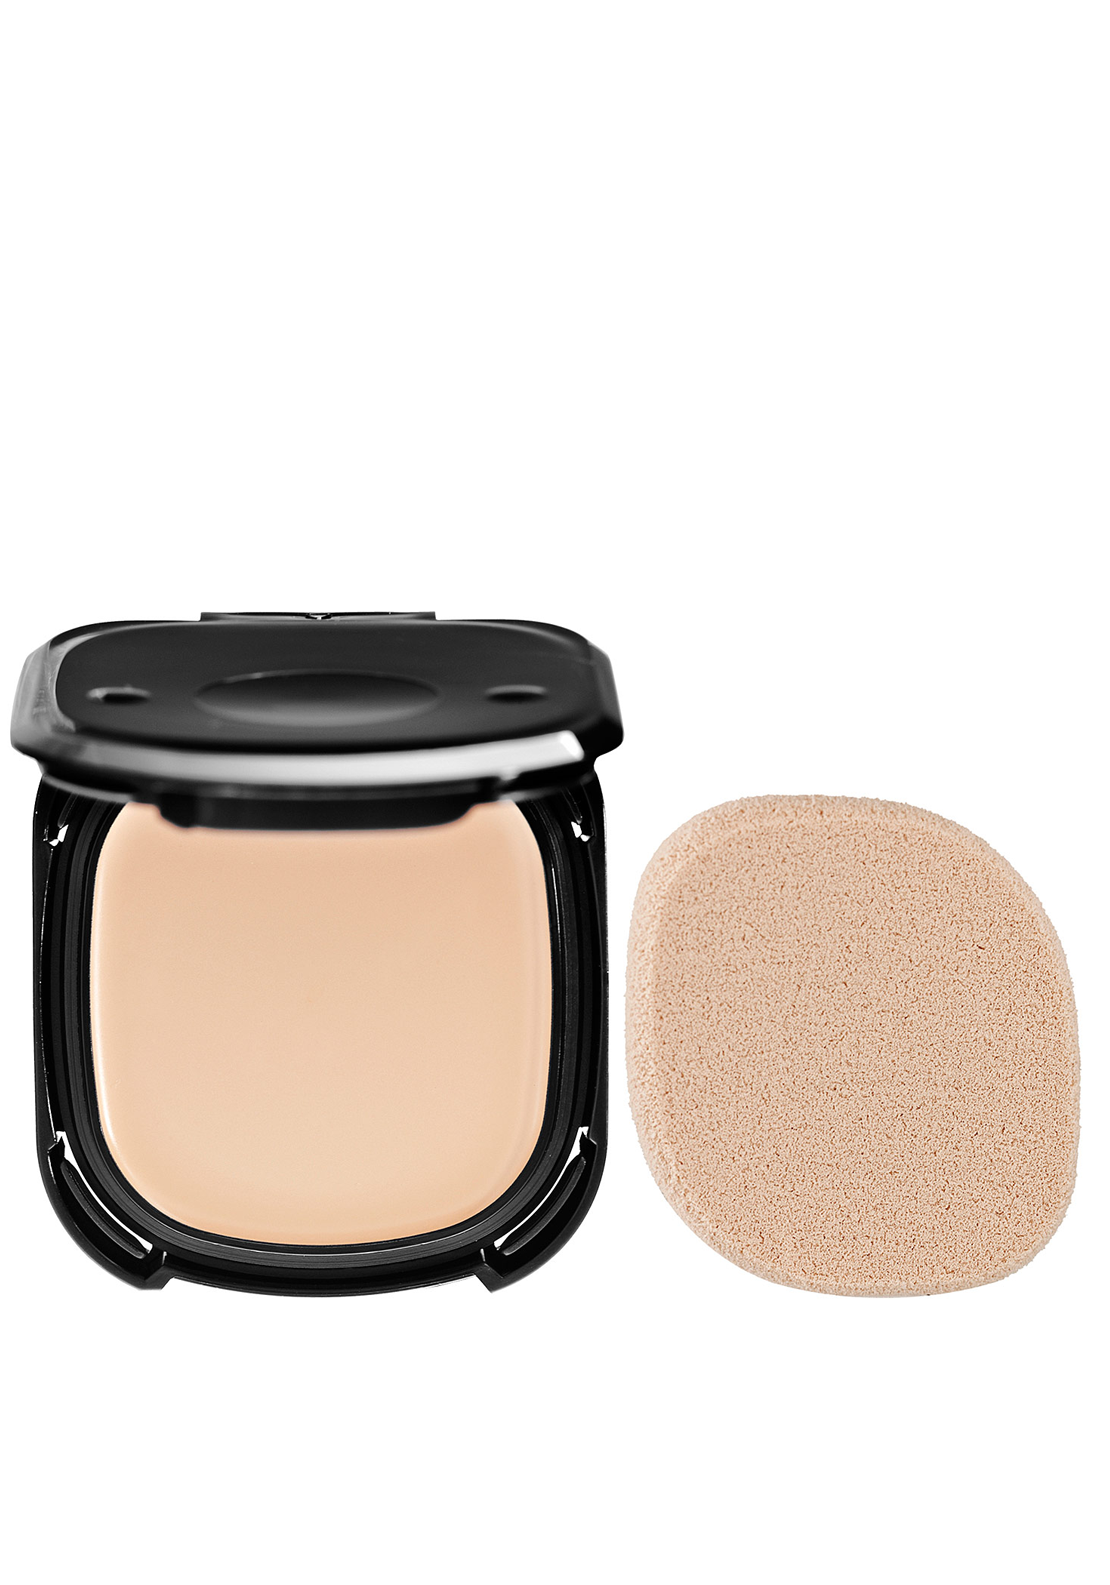 Shiseido Advanced Hydro-Liquid Compact (Refill) with SPF10, Natural Deep Ivory I60